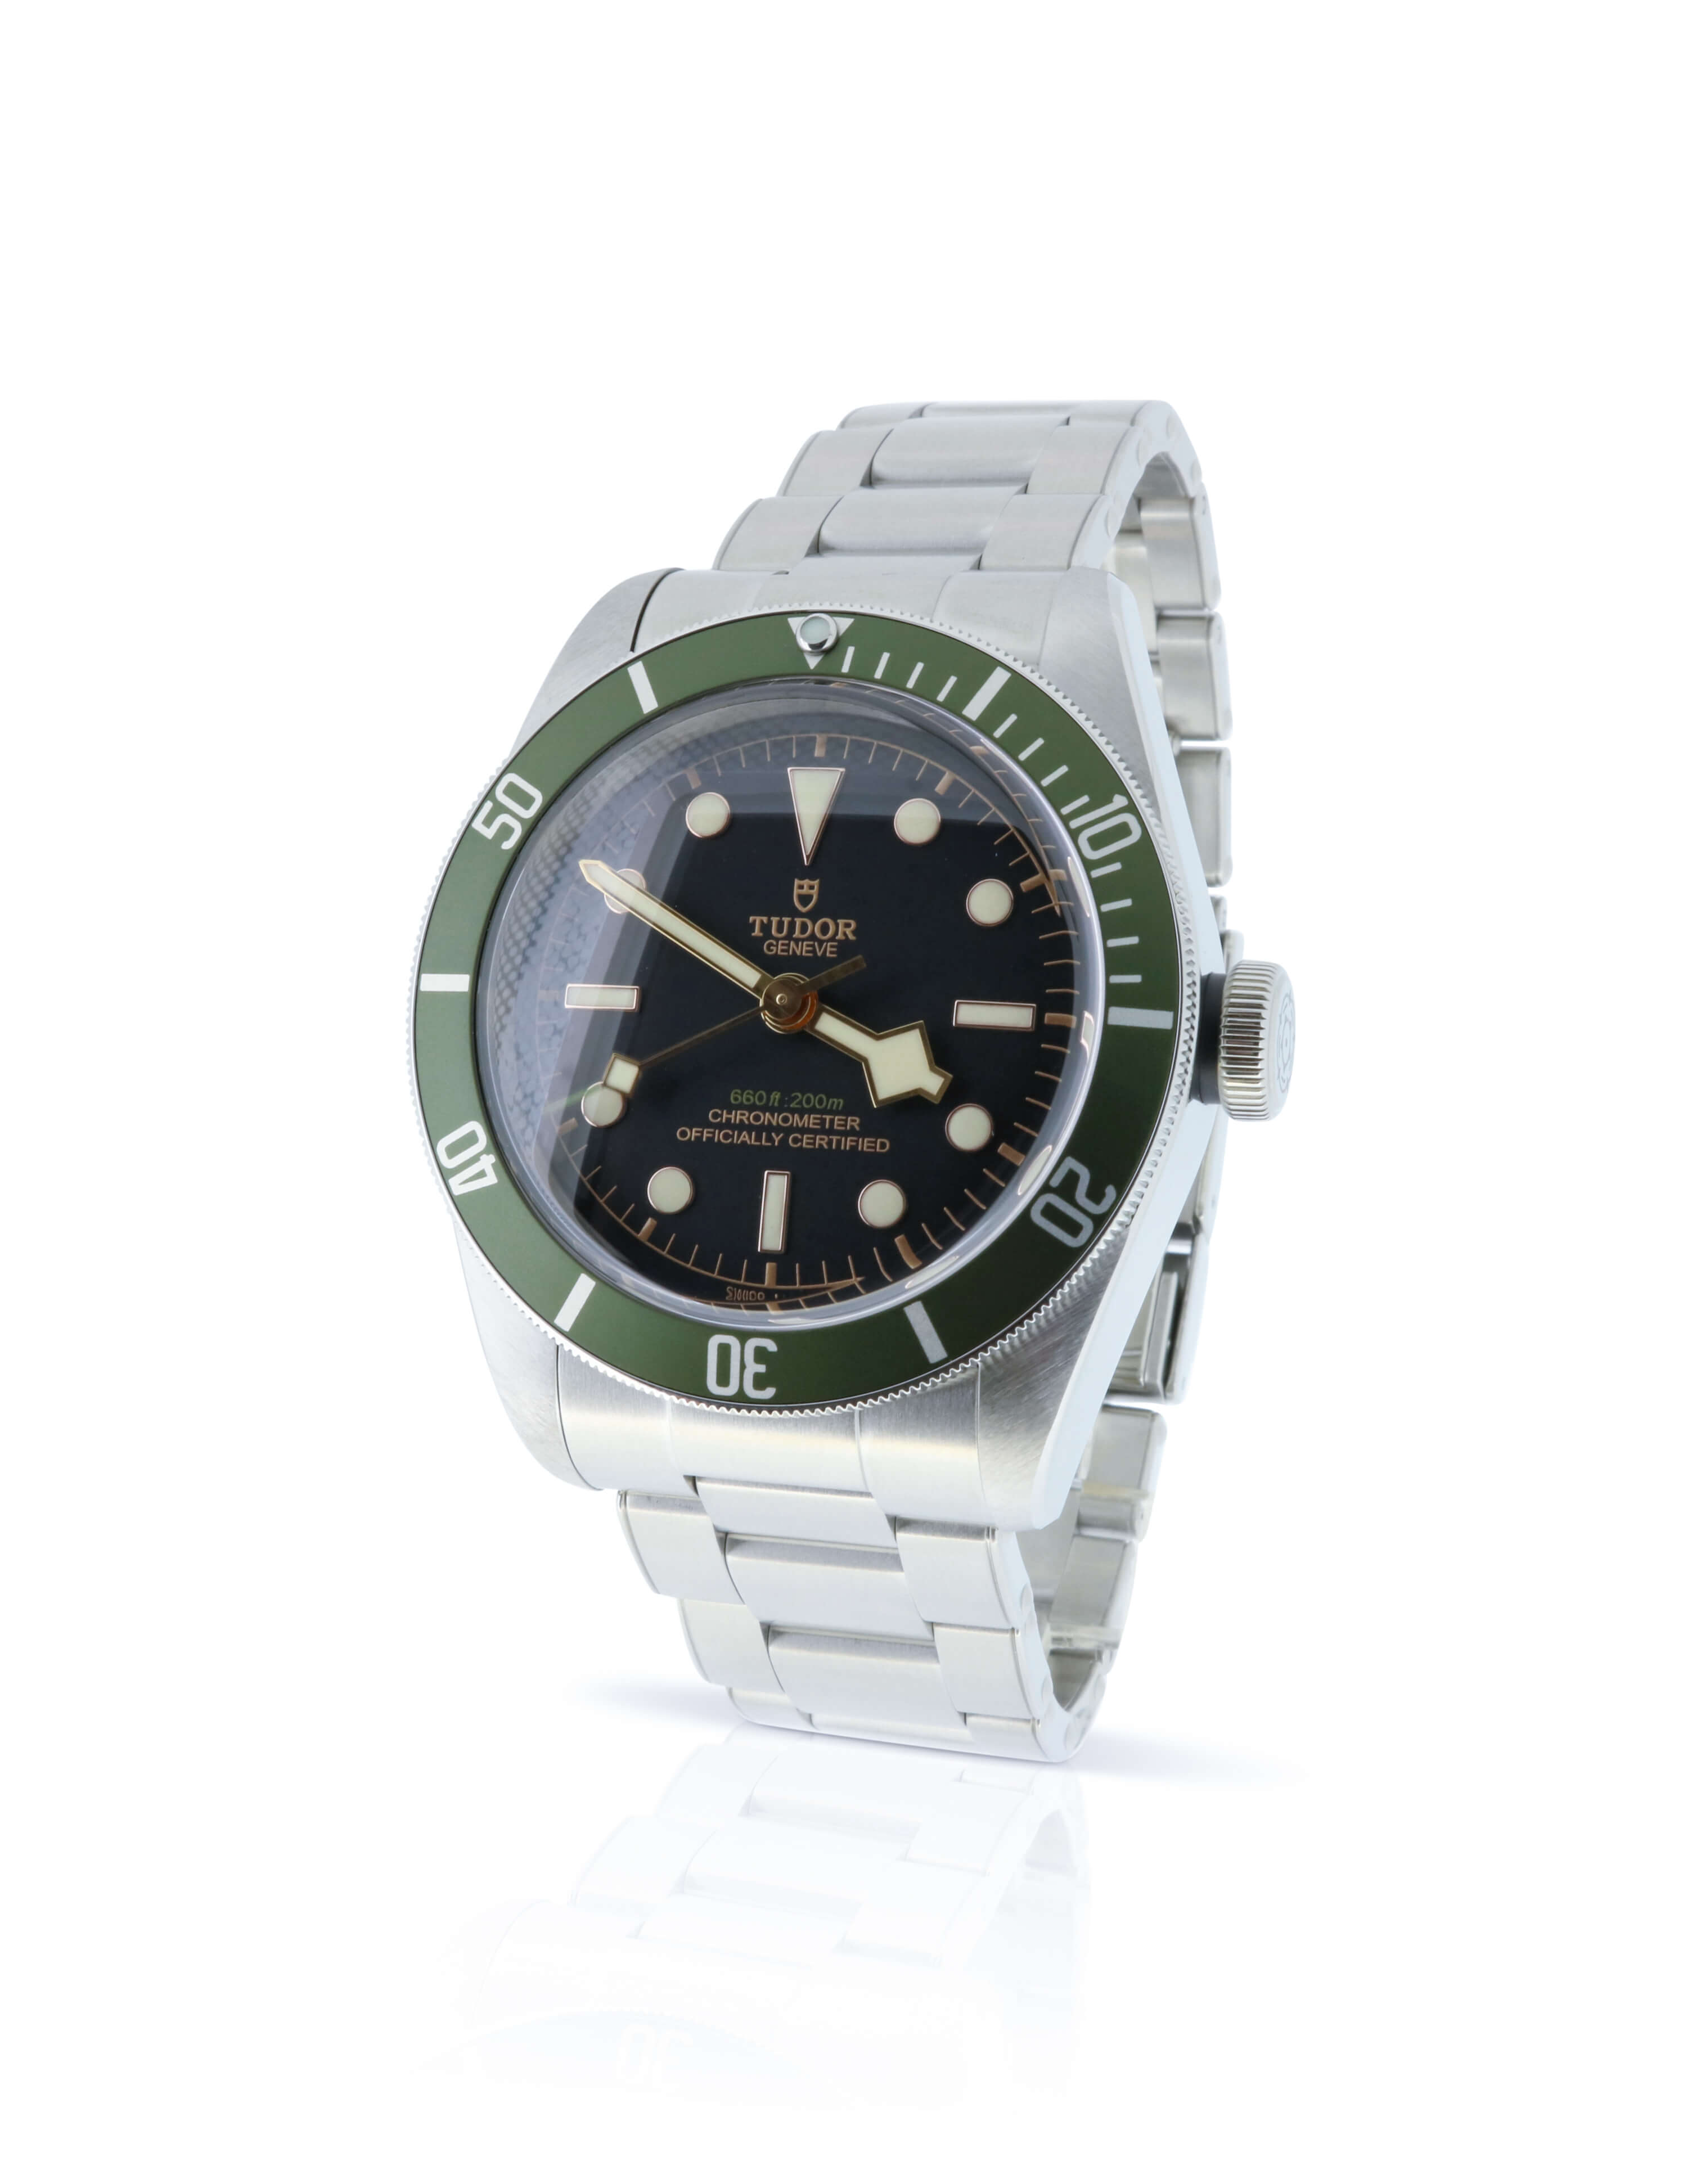 8ea62d1282d Tudor Black Bay 79230G 'Harrods Edition' – Bloombar Watches, Sell or ...